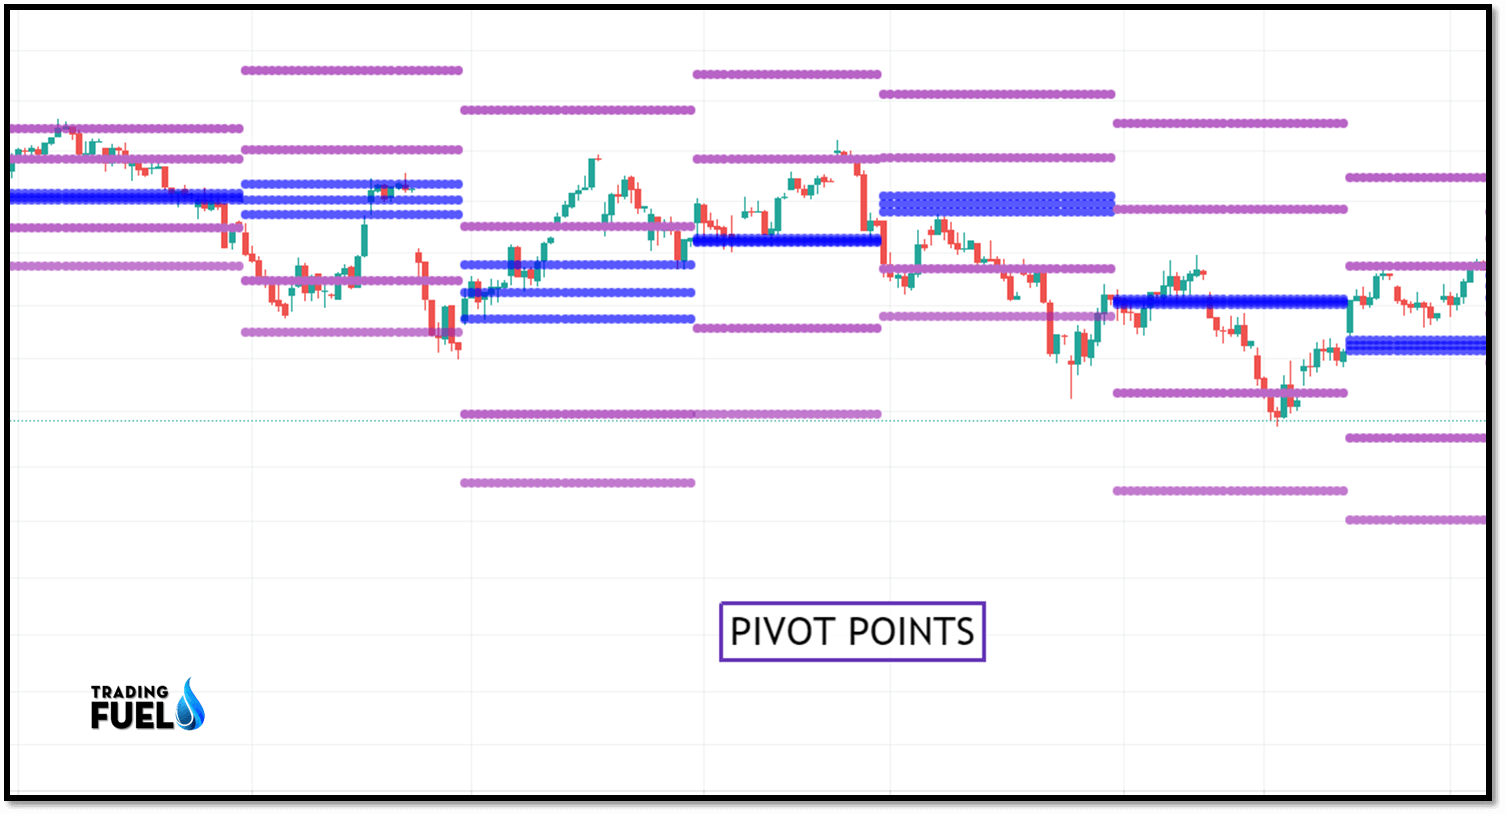 What are Pivot Points